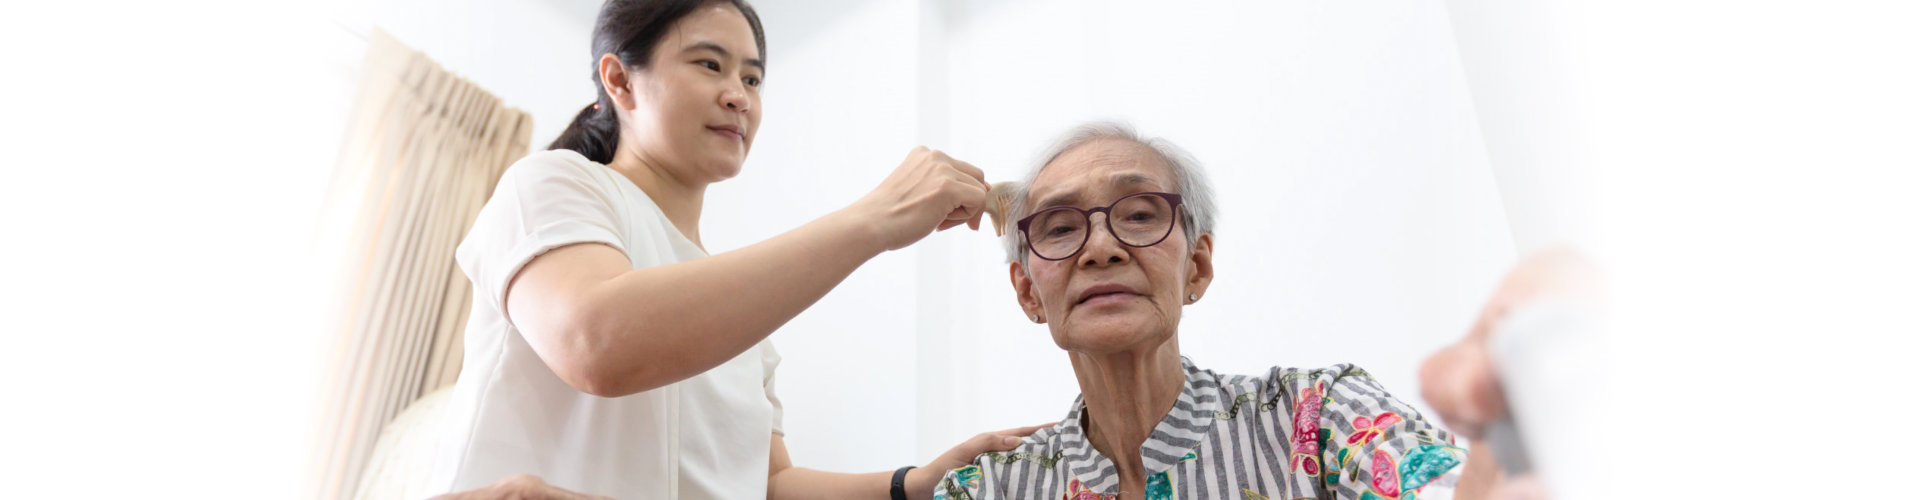 caregiver wipes the sweat of the elderly